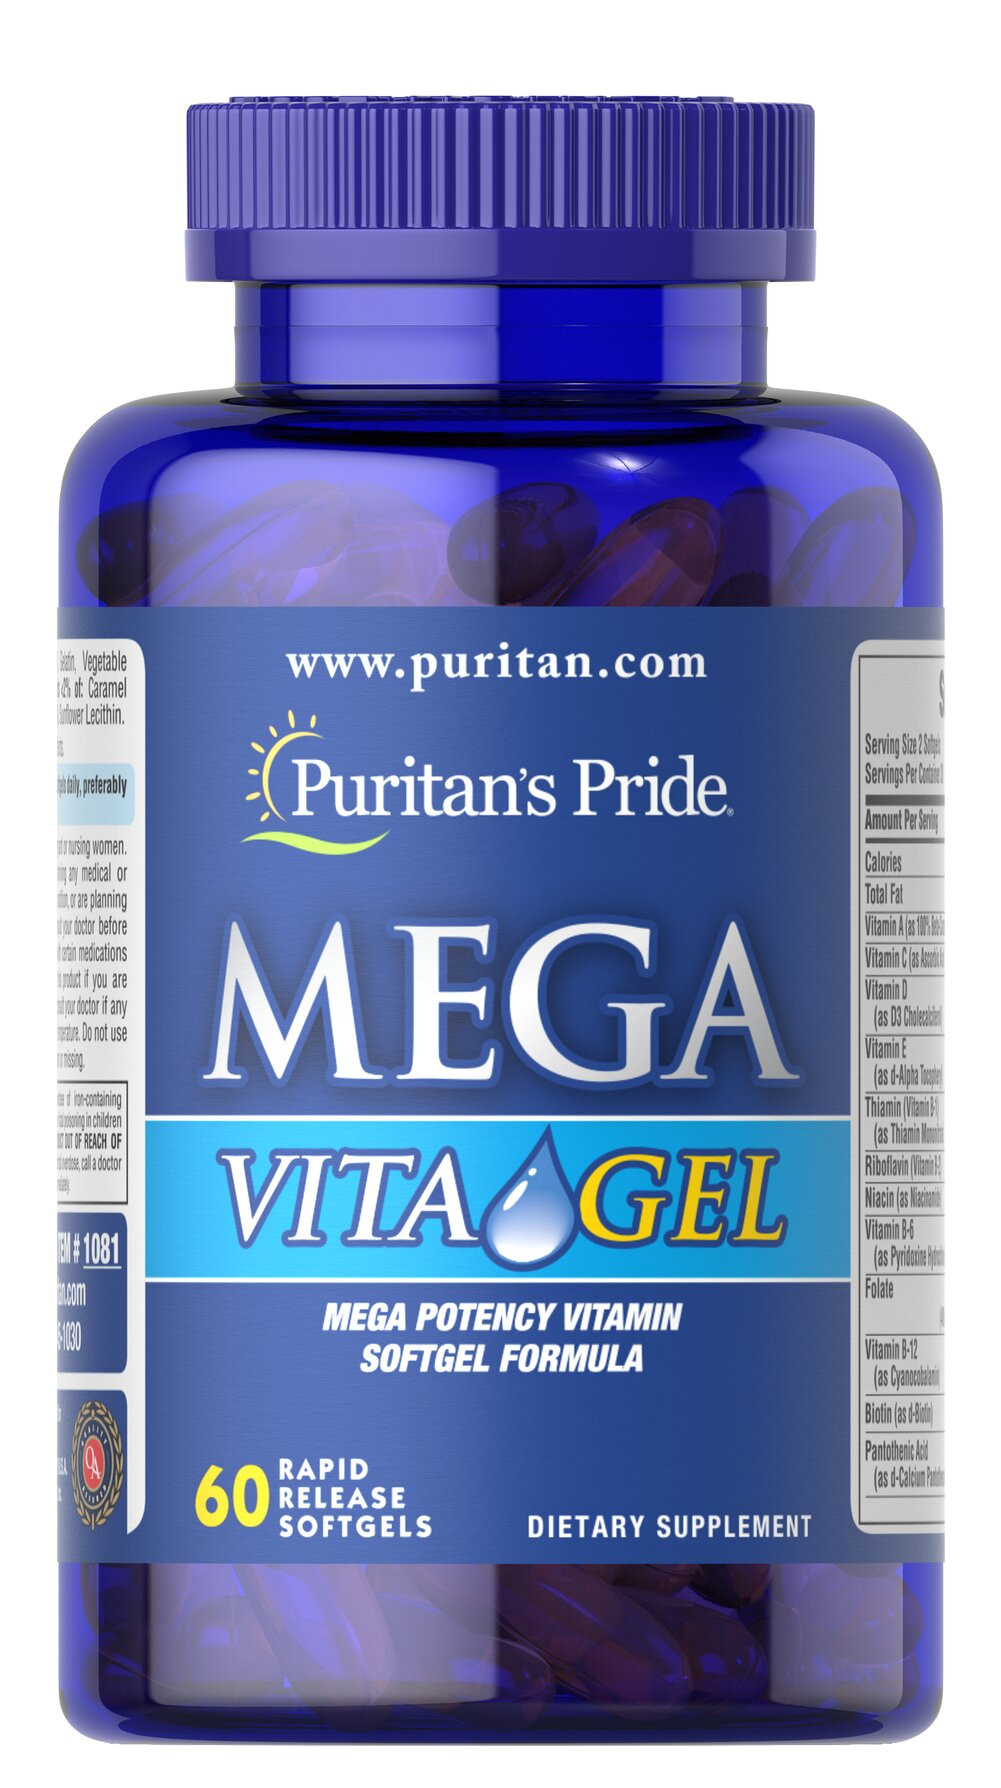 Mega Vita Gel Multivitamins <p>Mega Vita Gel is an exclusive vitamin and mineral formula. Each softgel contains 36 important nutrients without sugar, starch, artificial flavors or preservatives!  Adults can take two softgels daily with a meal.</p> 60 Softgels